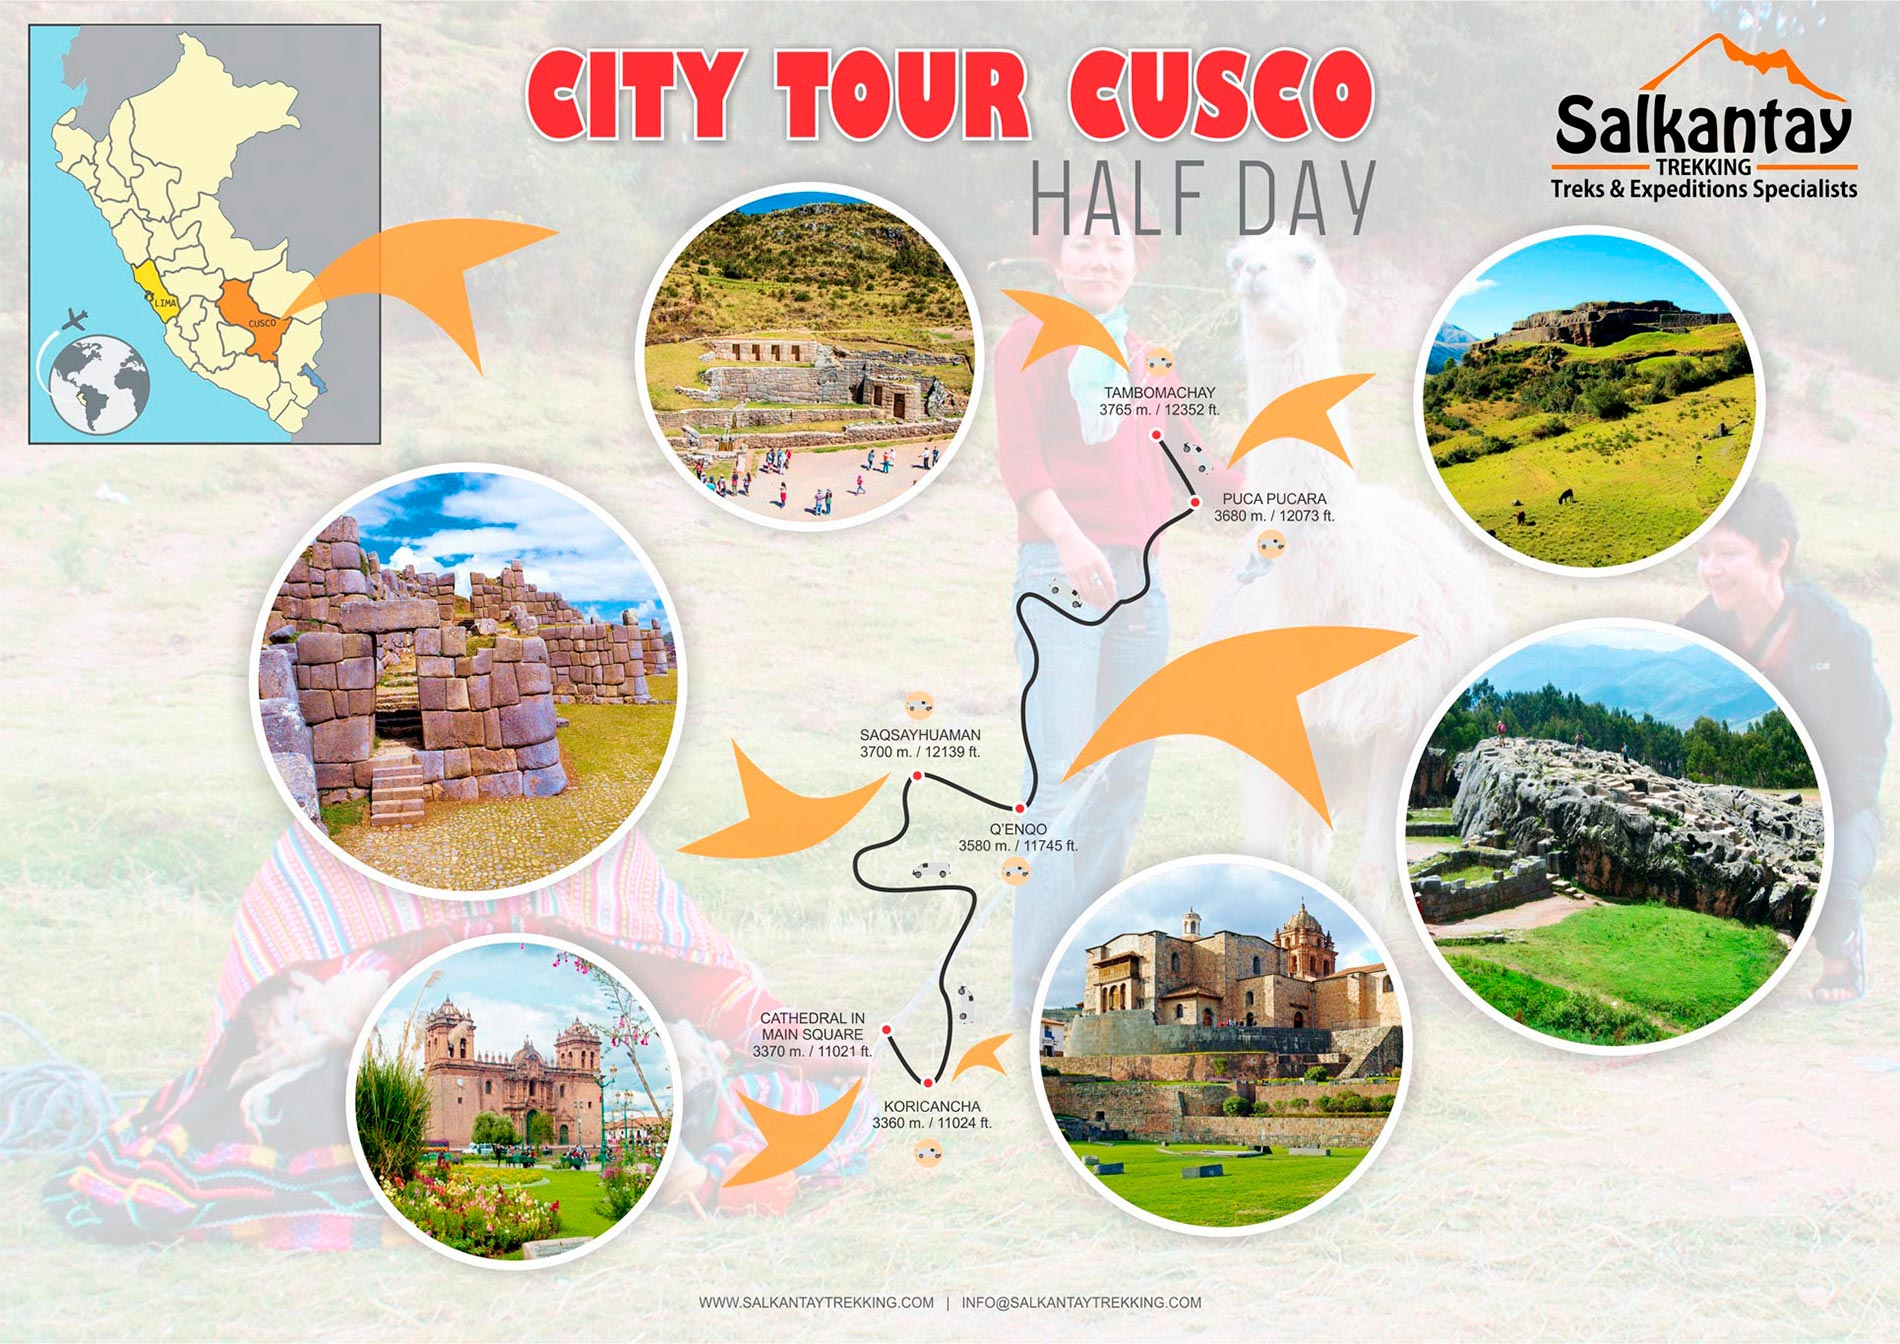 City Tour Cusco map and itinerary